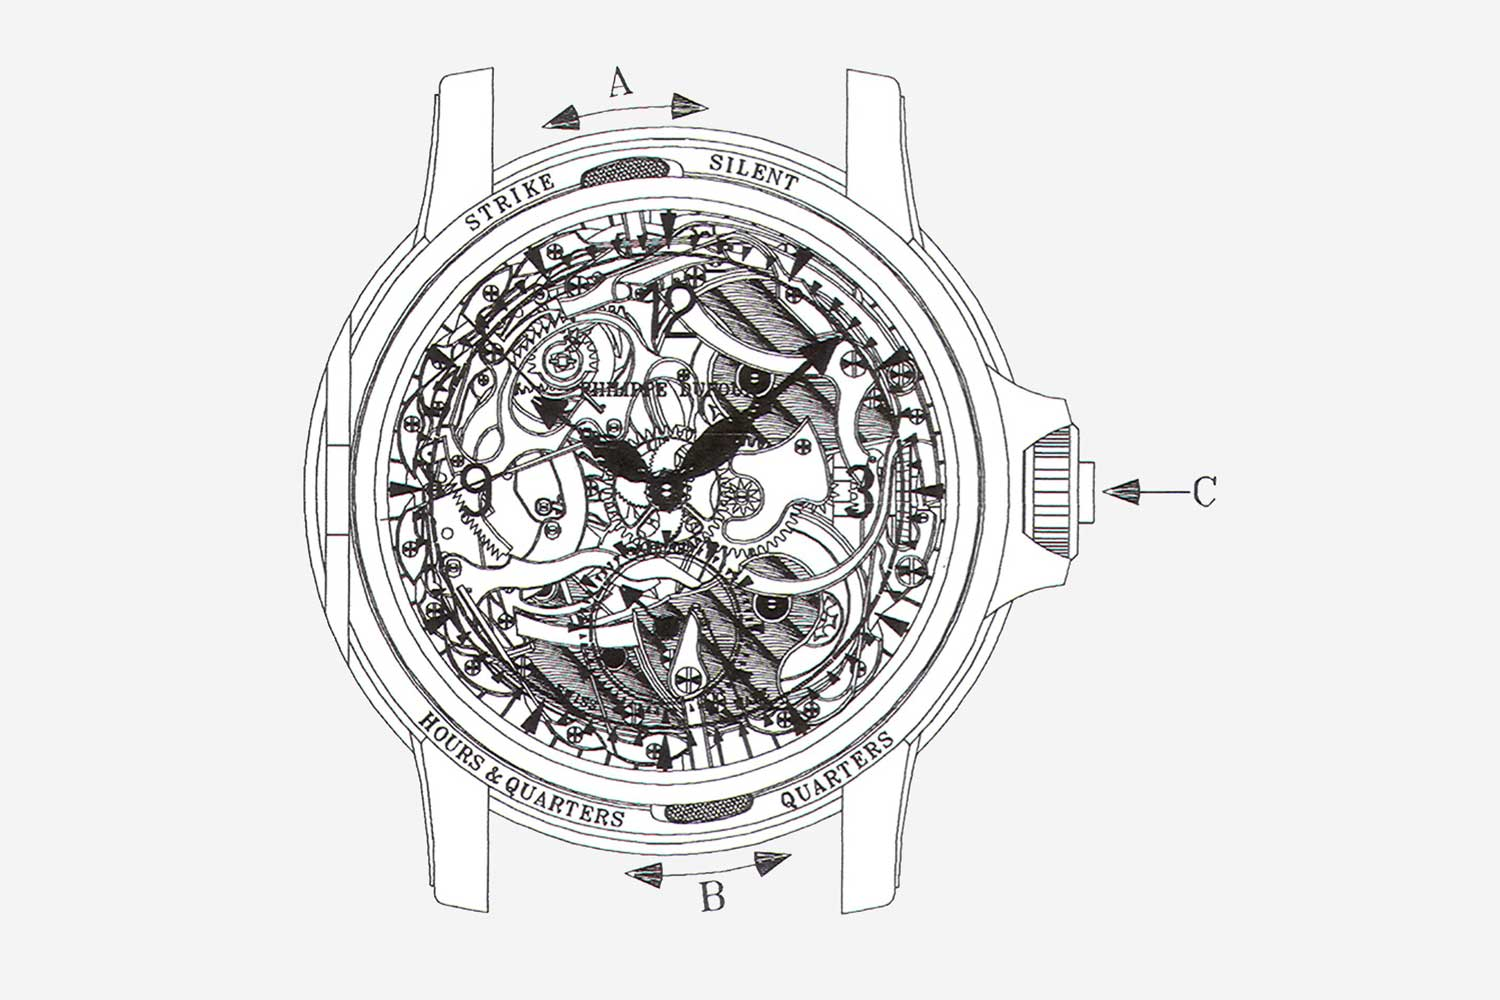 A technical drawing of Dufour's Grande Sonnerie minute-repeater wristwatch, courtesy of Philippe Dufour (Image: acollectedman.com)